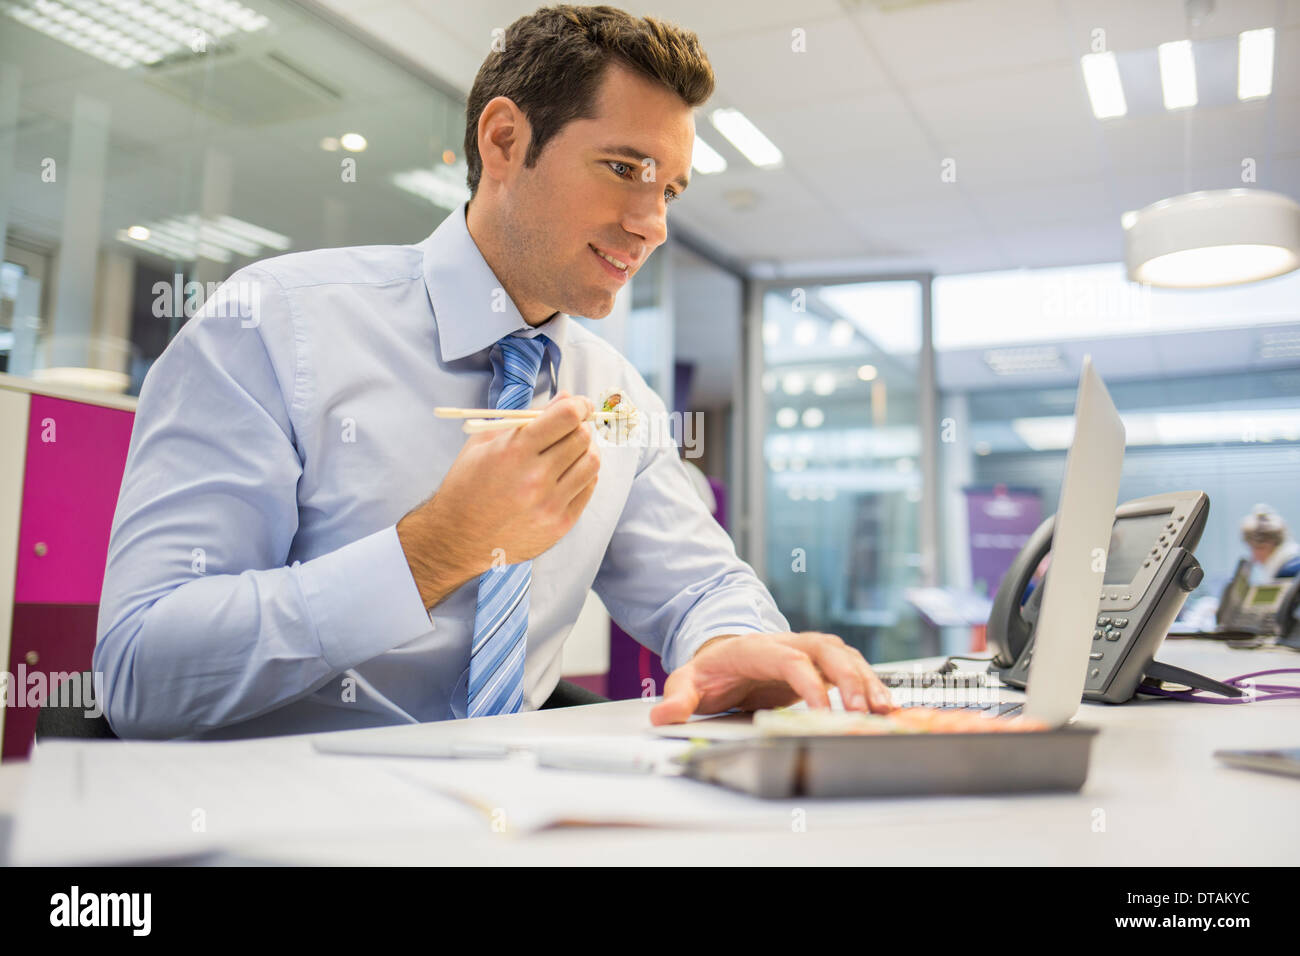 Businessman eating sushi in office - Stock Image